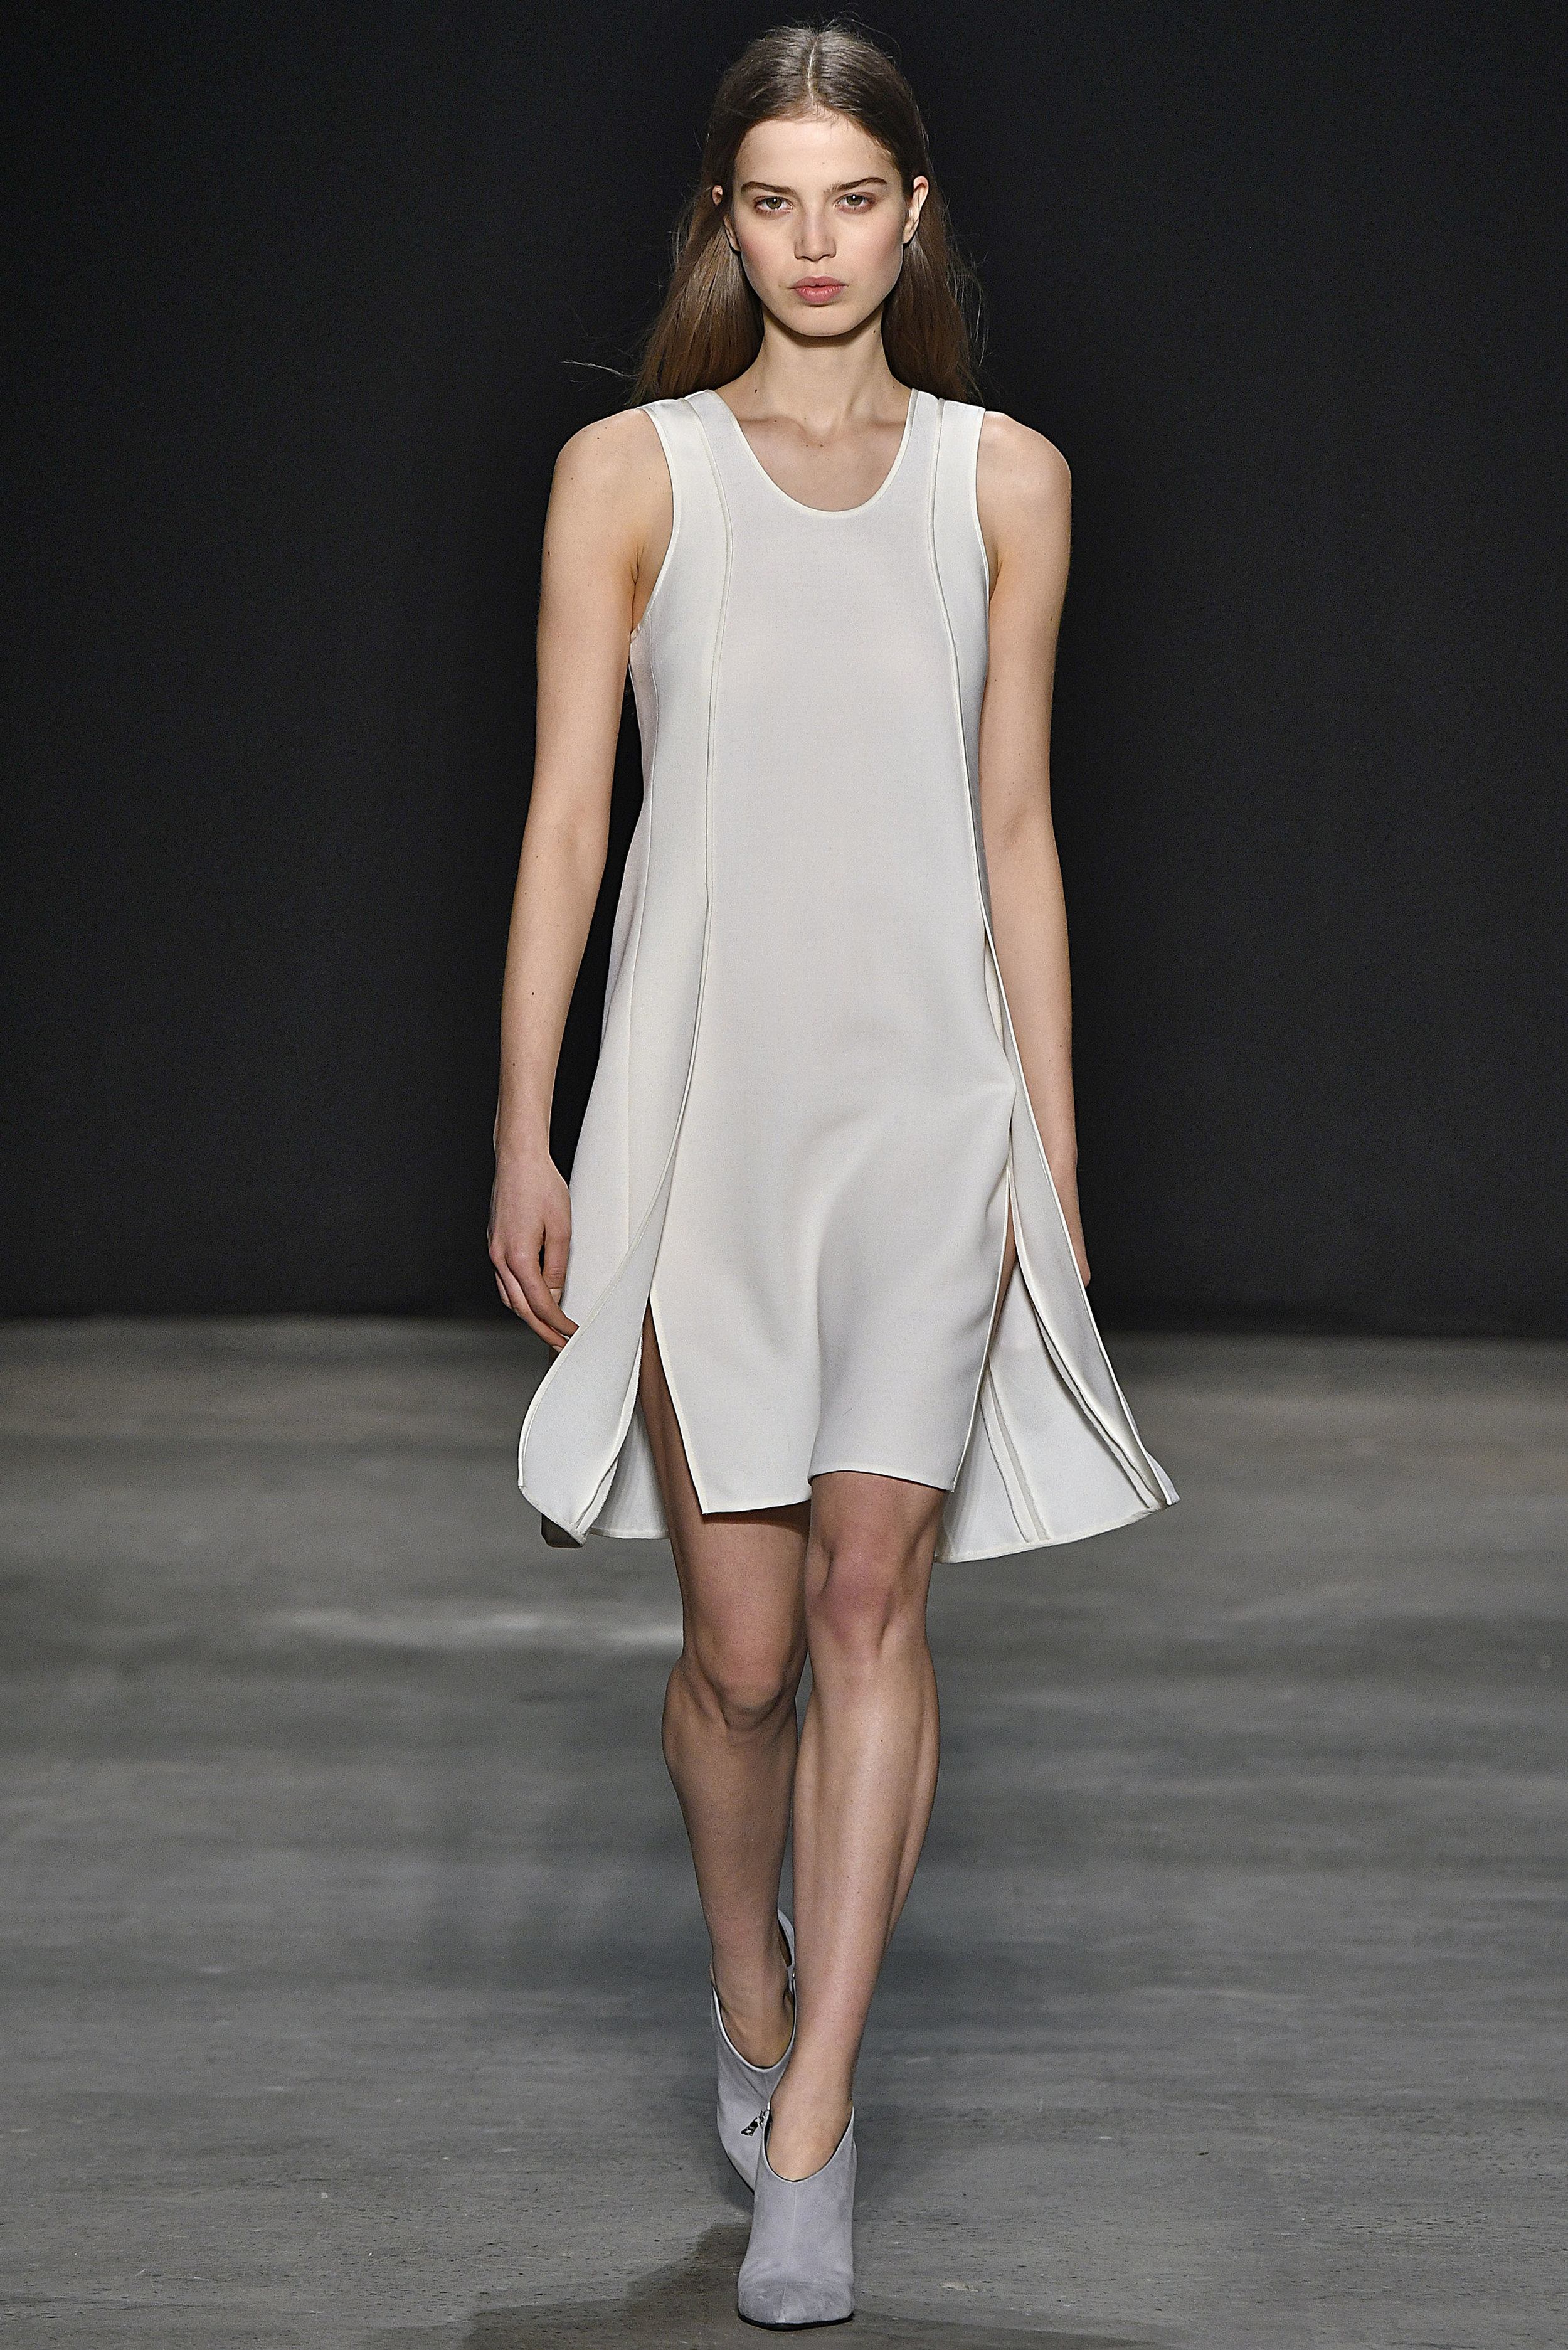 Narciso Rodriguez Fall 2017 collection. Ivory wool gauze panel dress.